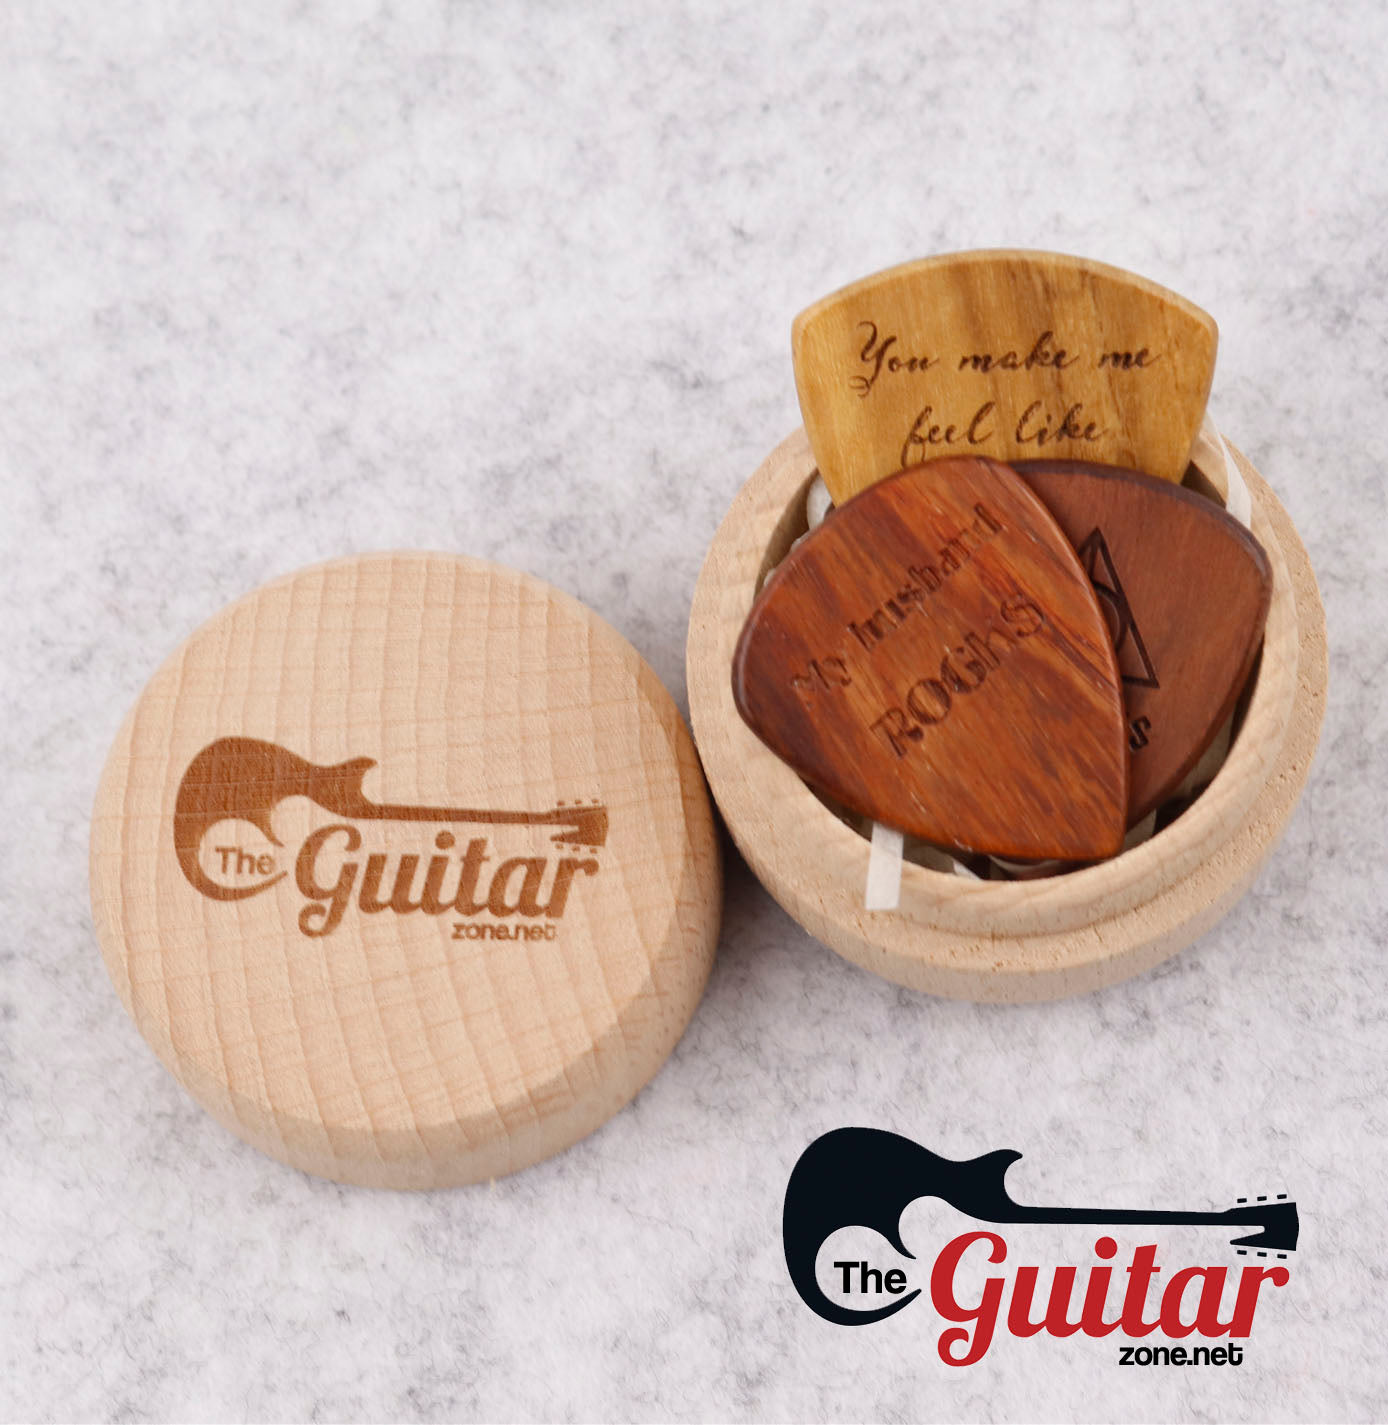 Wooden Round Box With Guitar Zone Logo